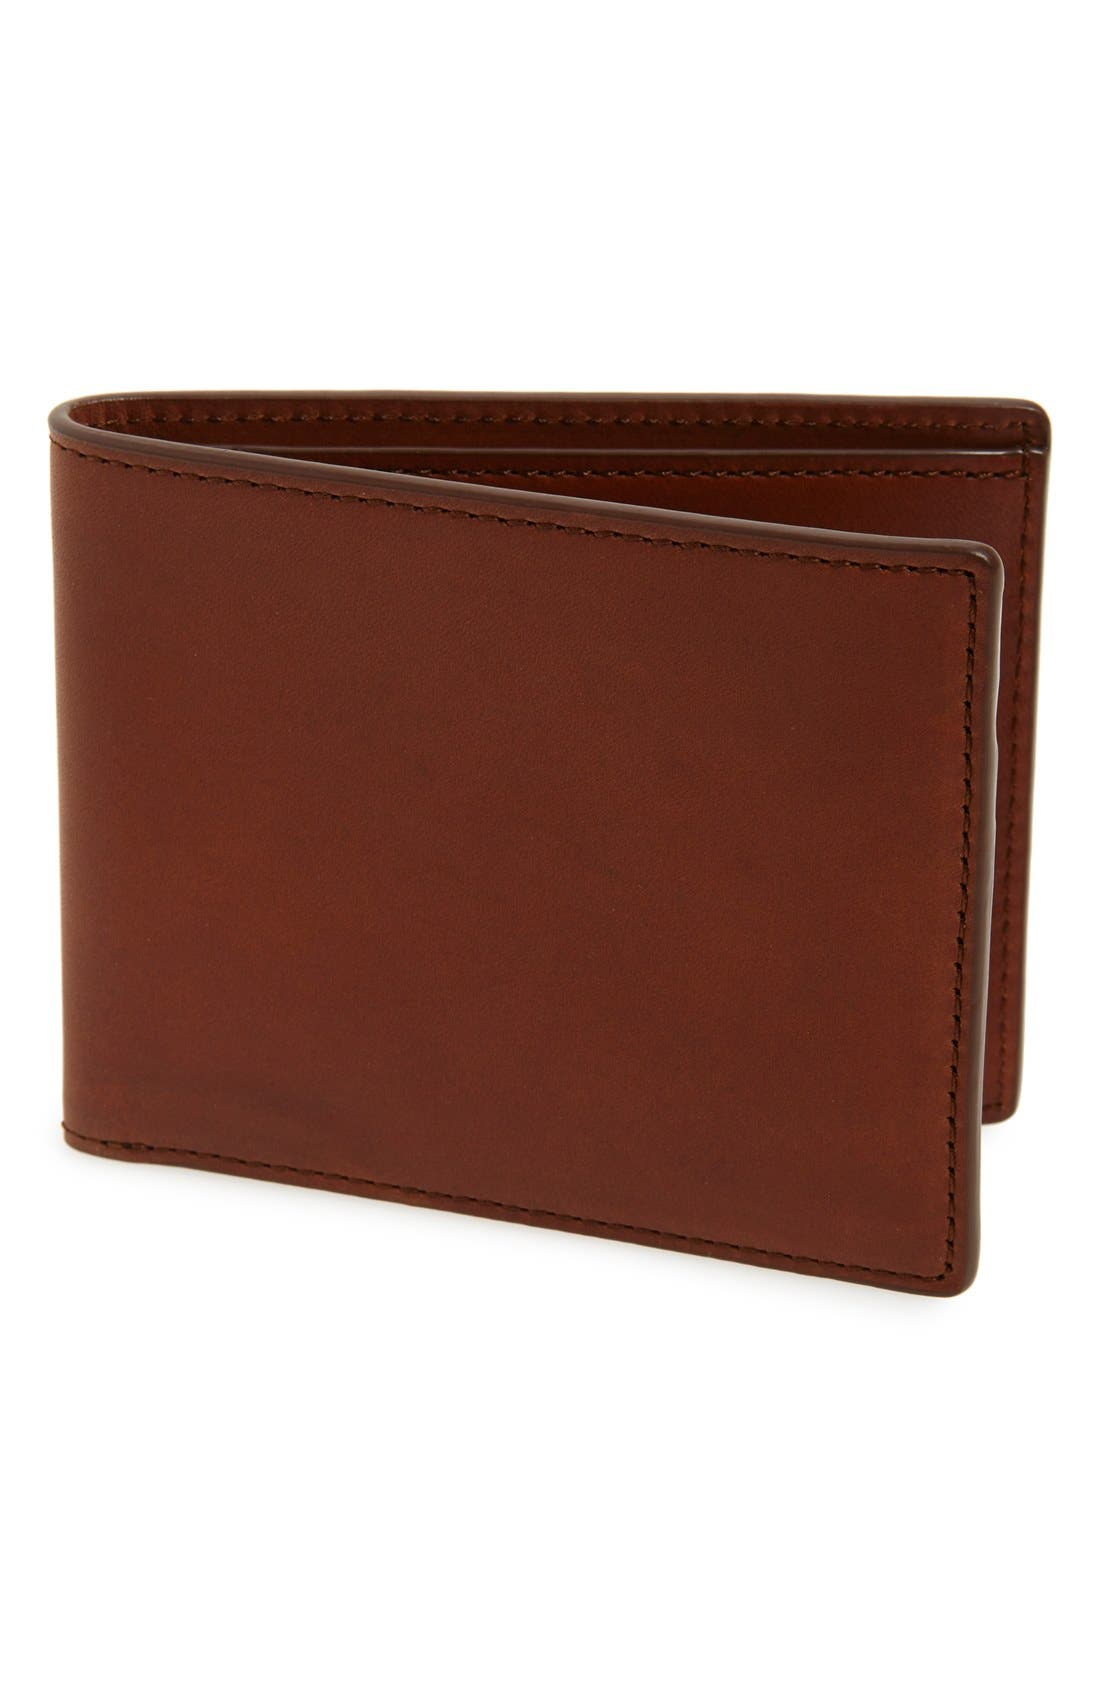 Hampshire Leather Bifold Wallet,                             Main thumbnail 2, color,